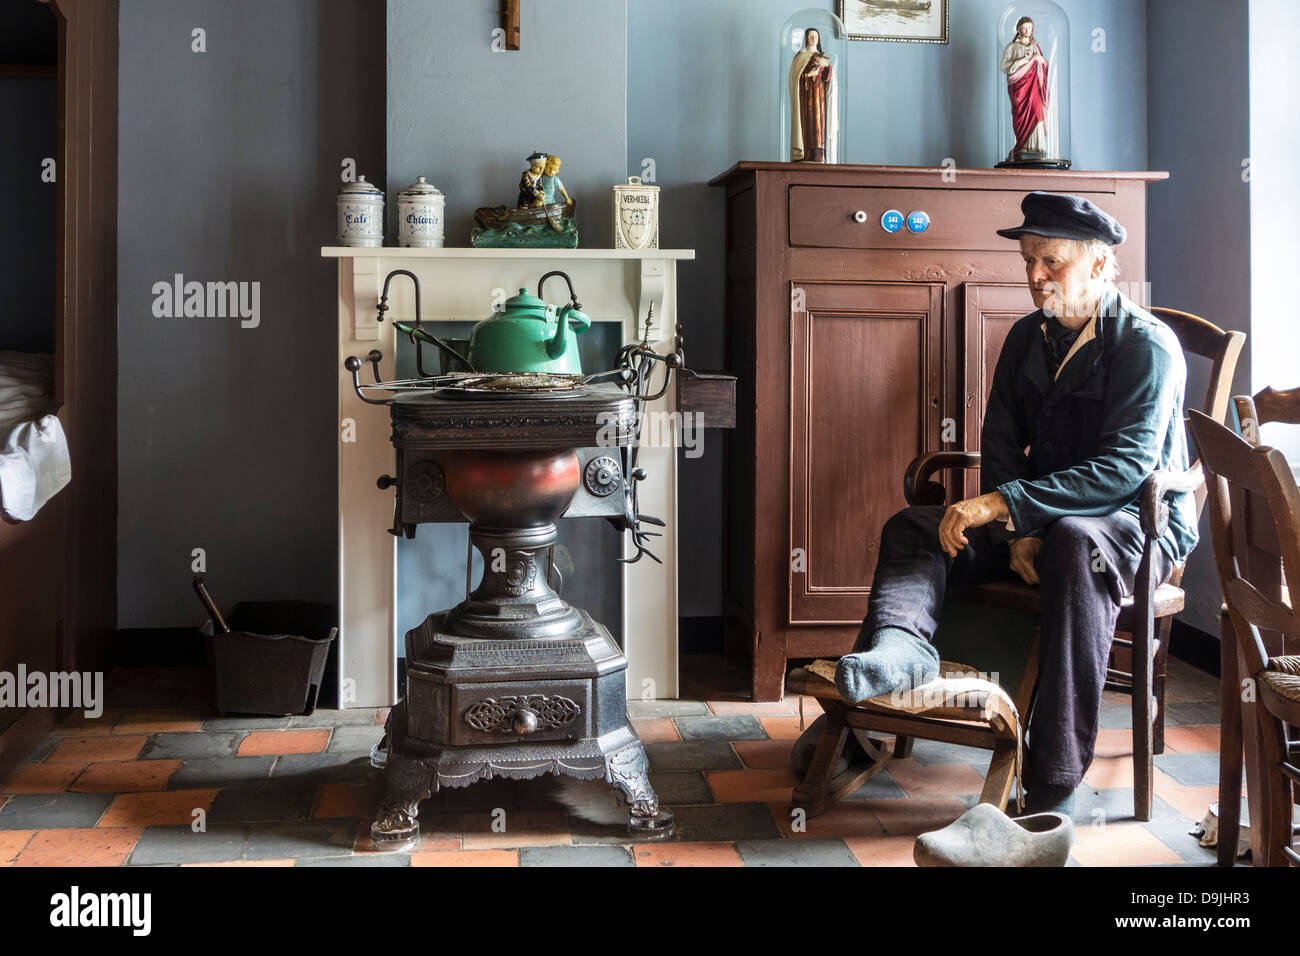 Interior with range / stove in old fisherman's house at Navigo, the National Fisheries Museum at Oostduinkerke, - Stock Image